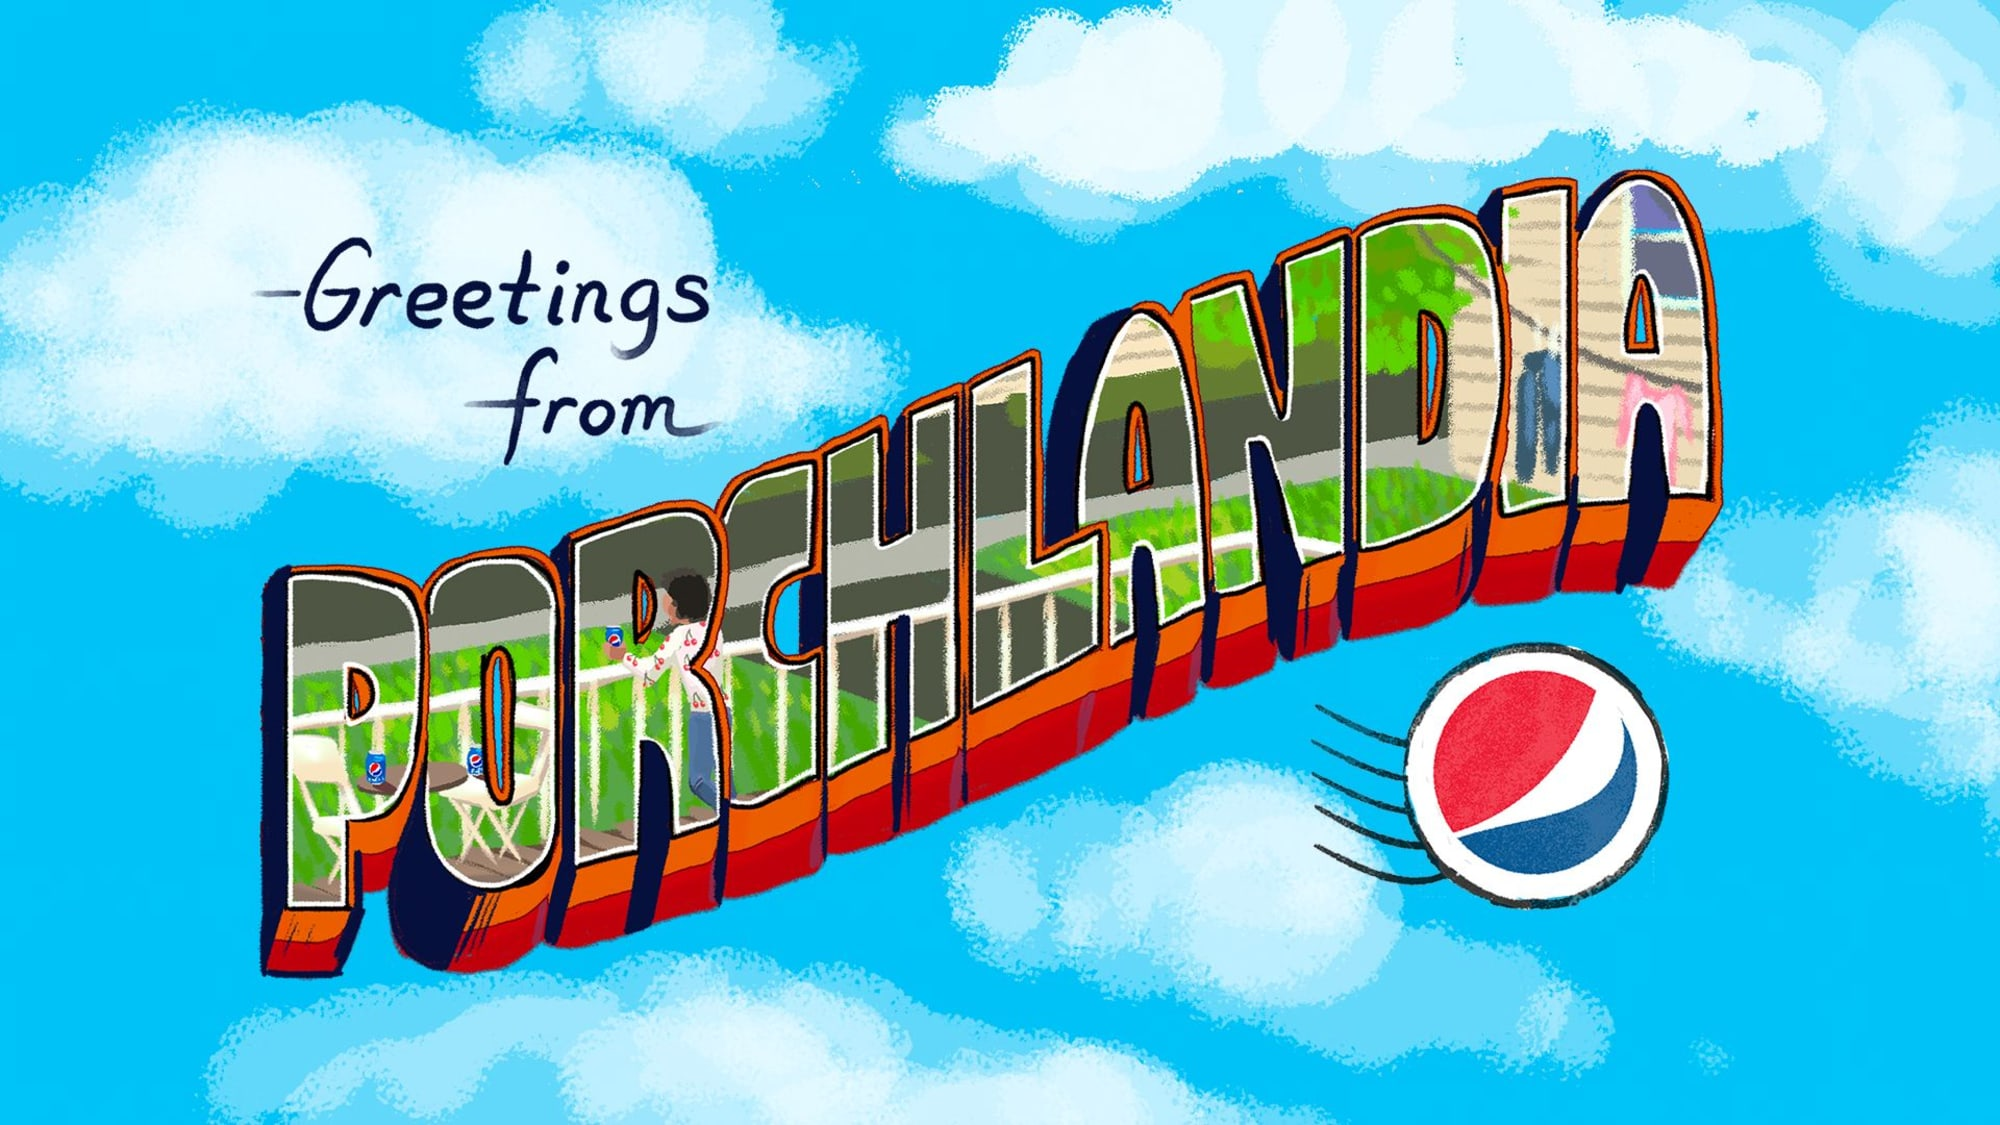 Pepsi satisfies our wanderlust with its Staycation Postcards